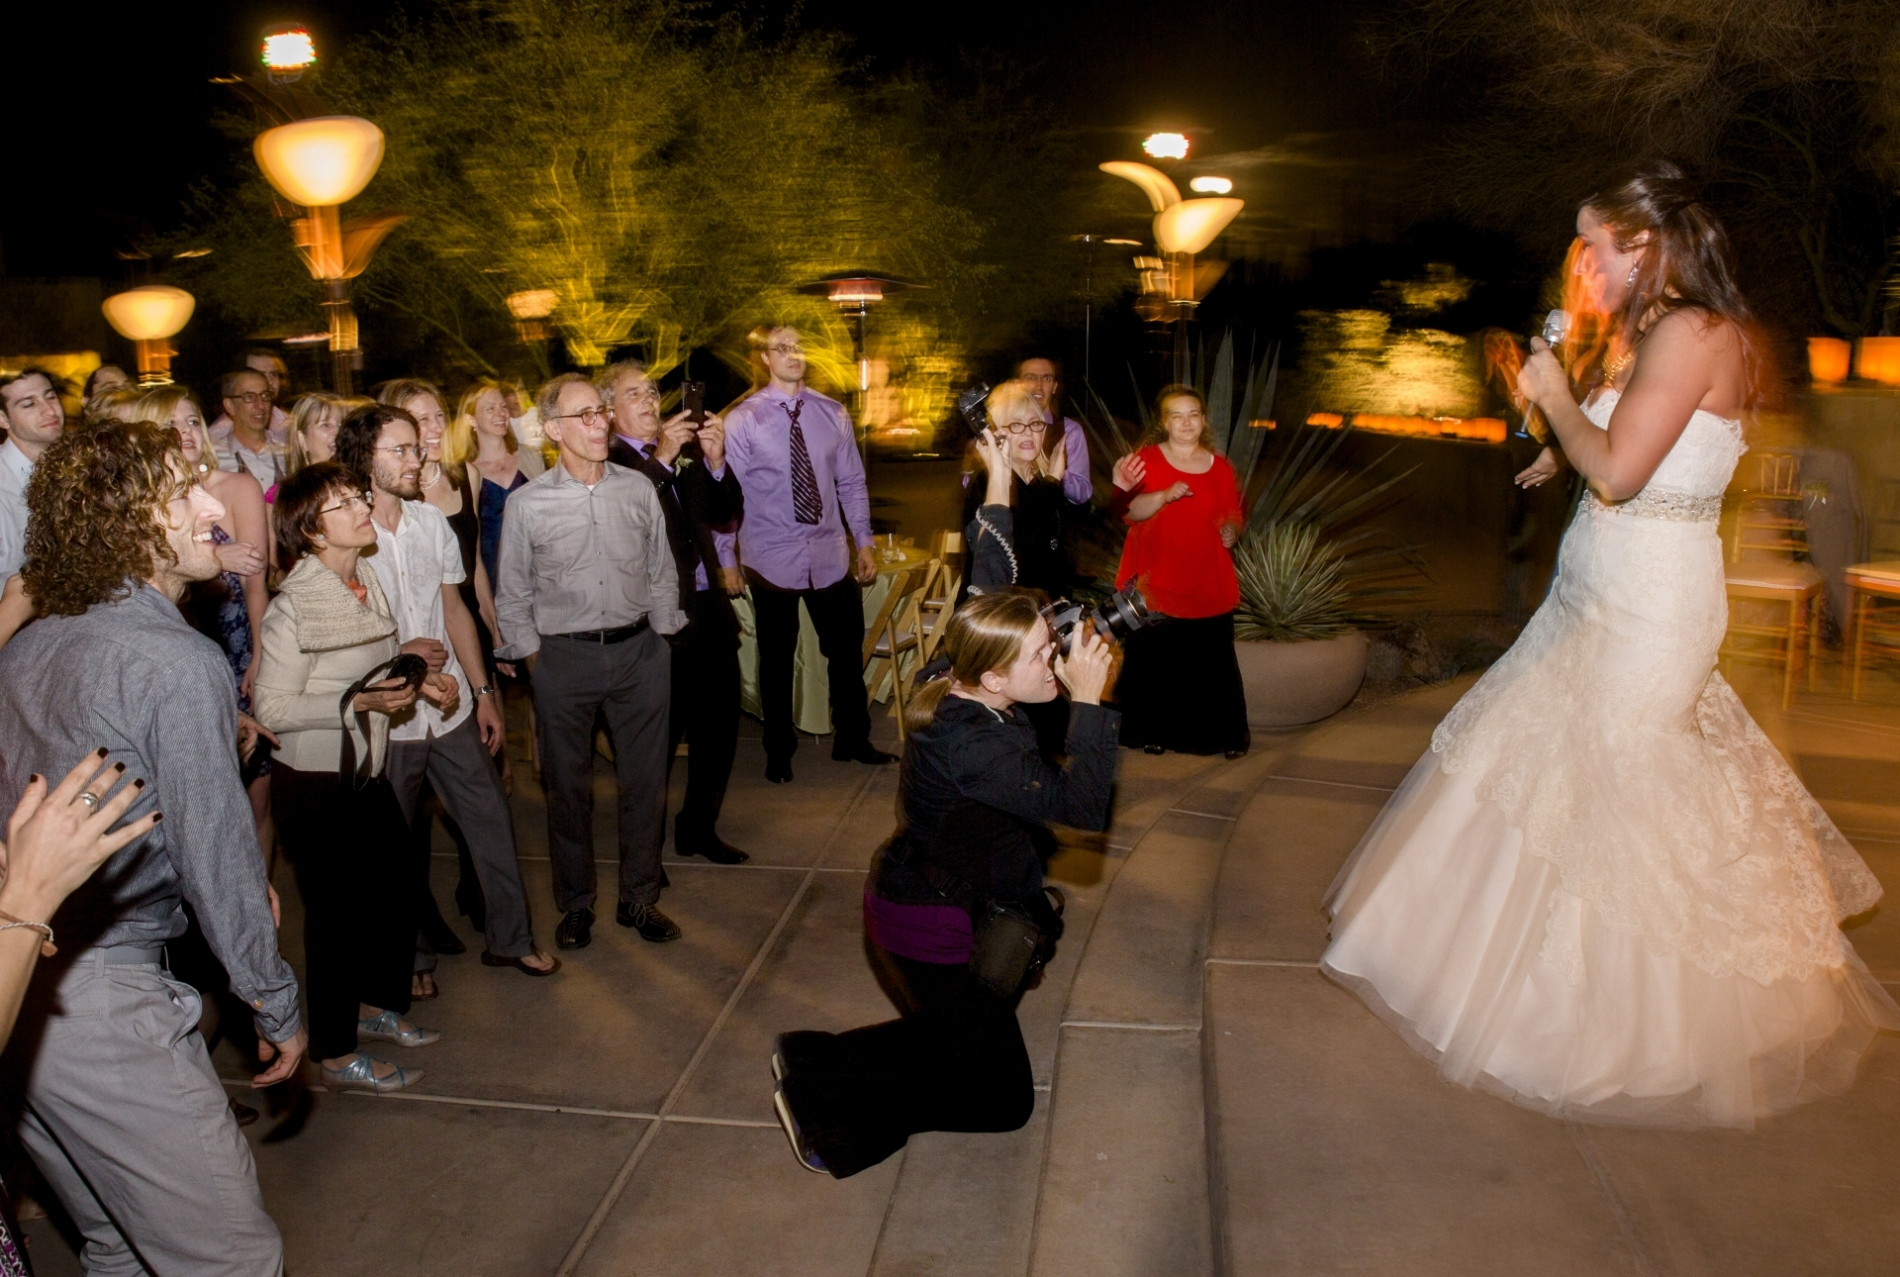 A working shot of Laura Segall, wedding photographer for AZ